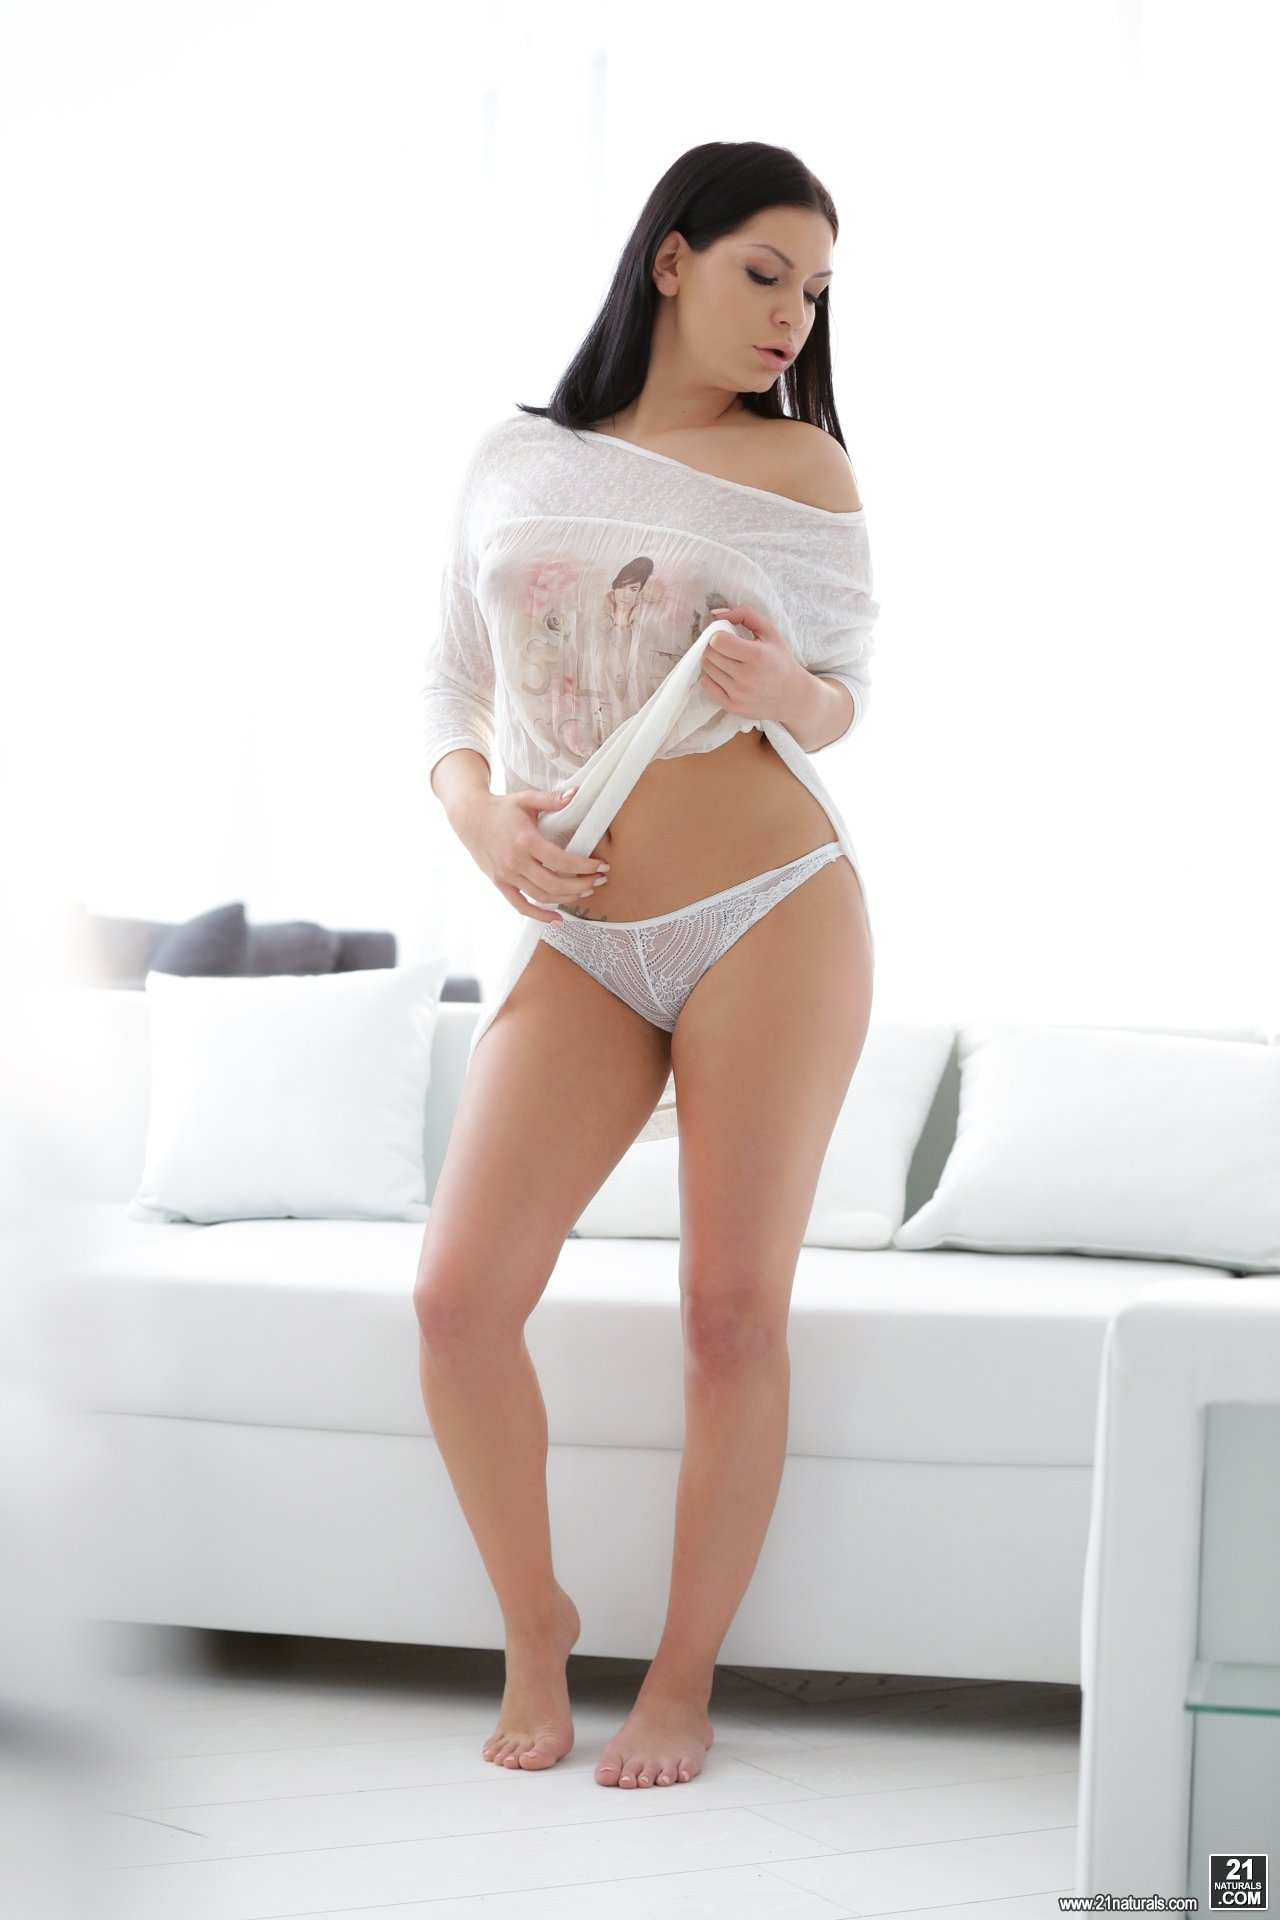 Slut load cum whore wife Fuck out xxx chinese beautiful sex